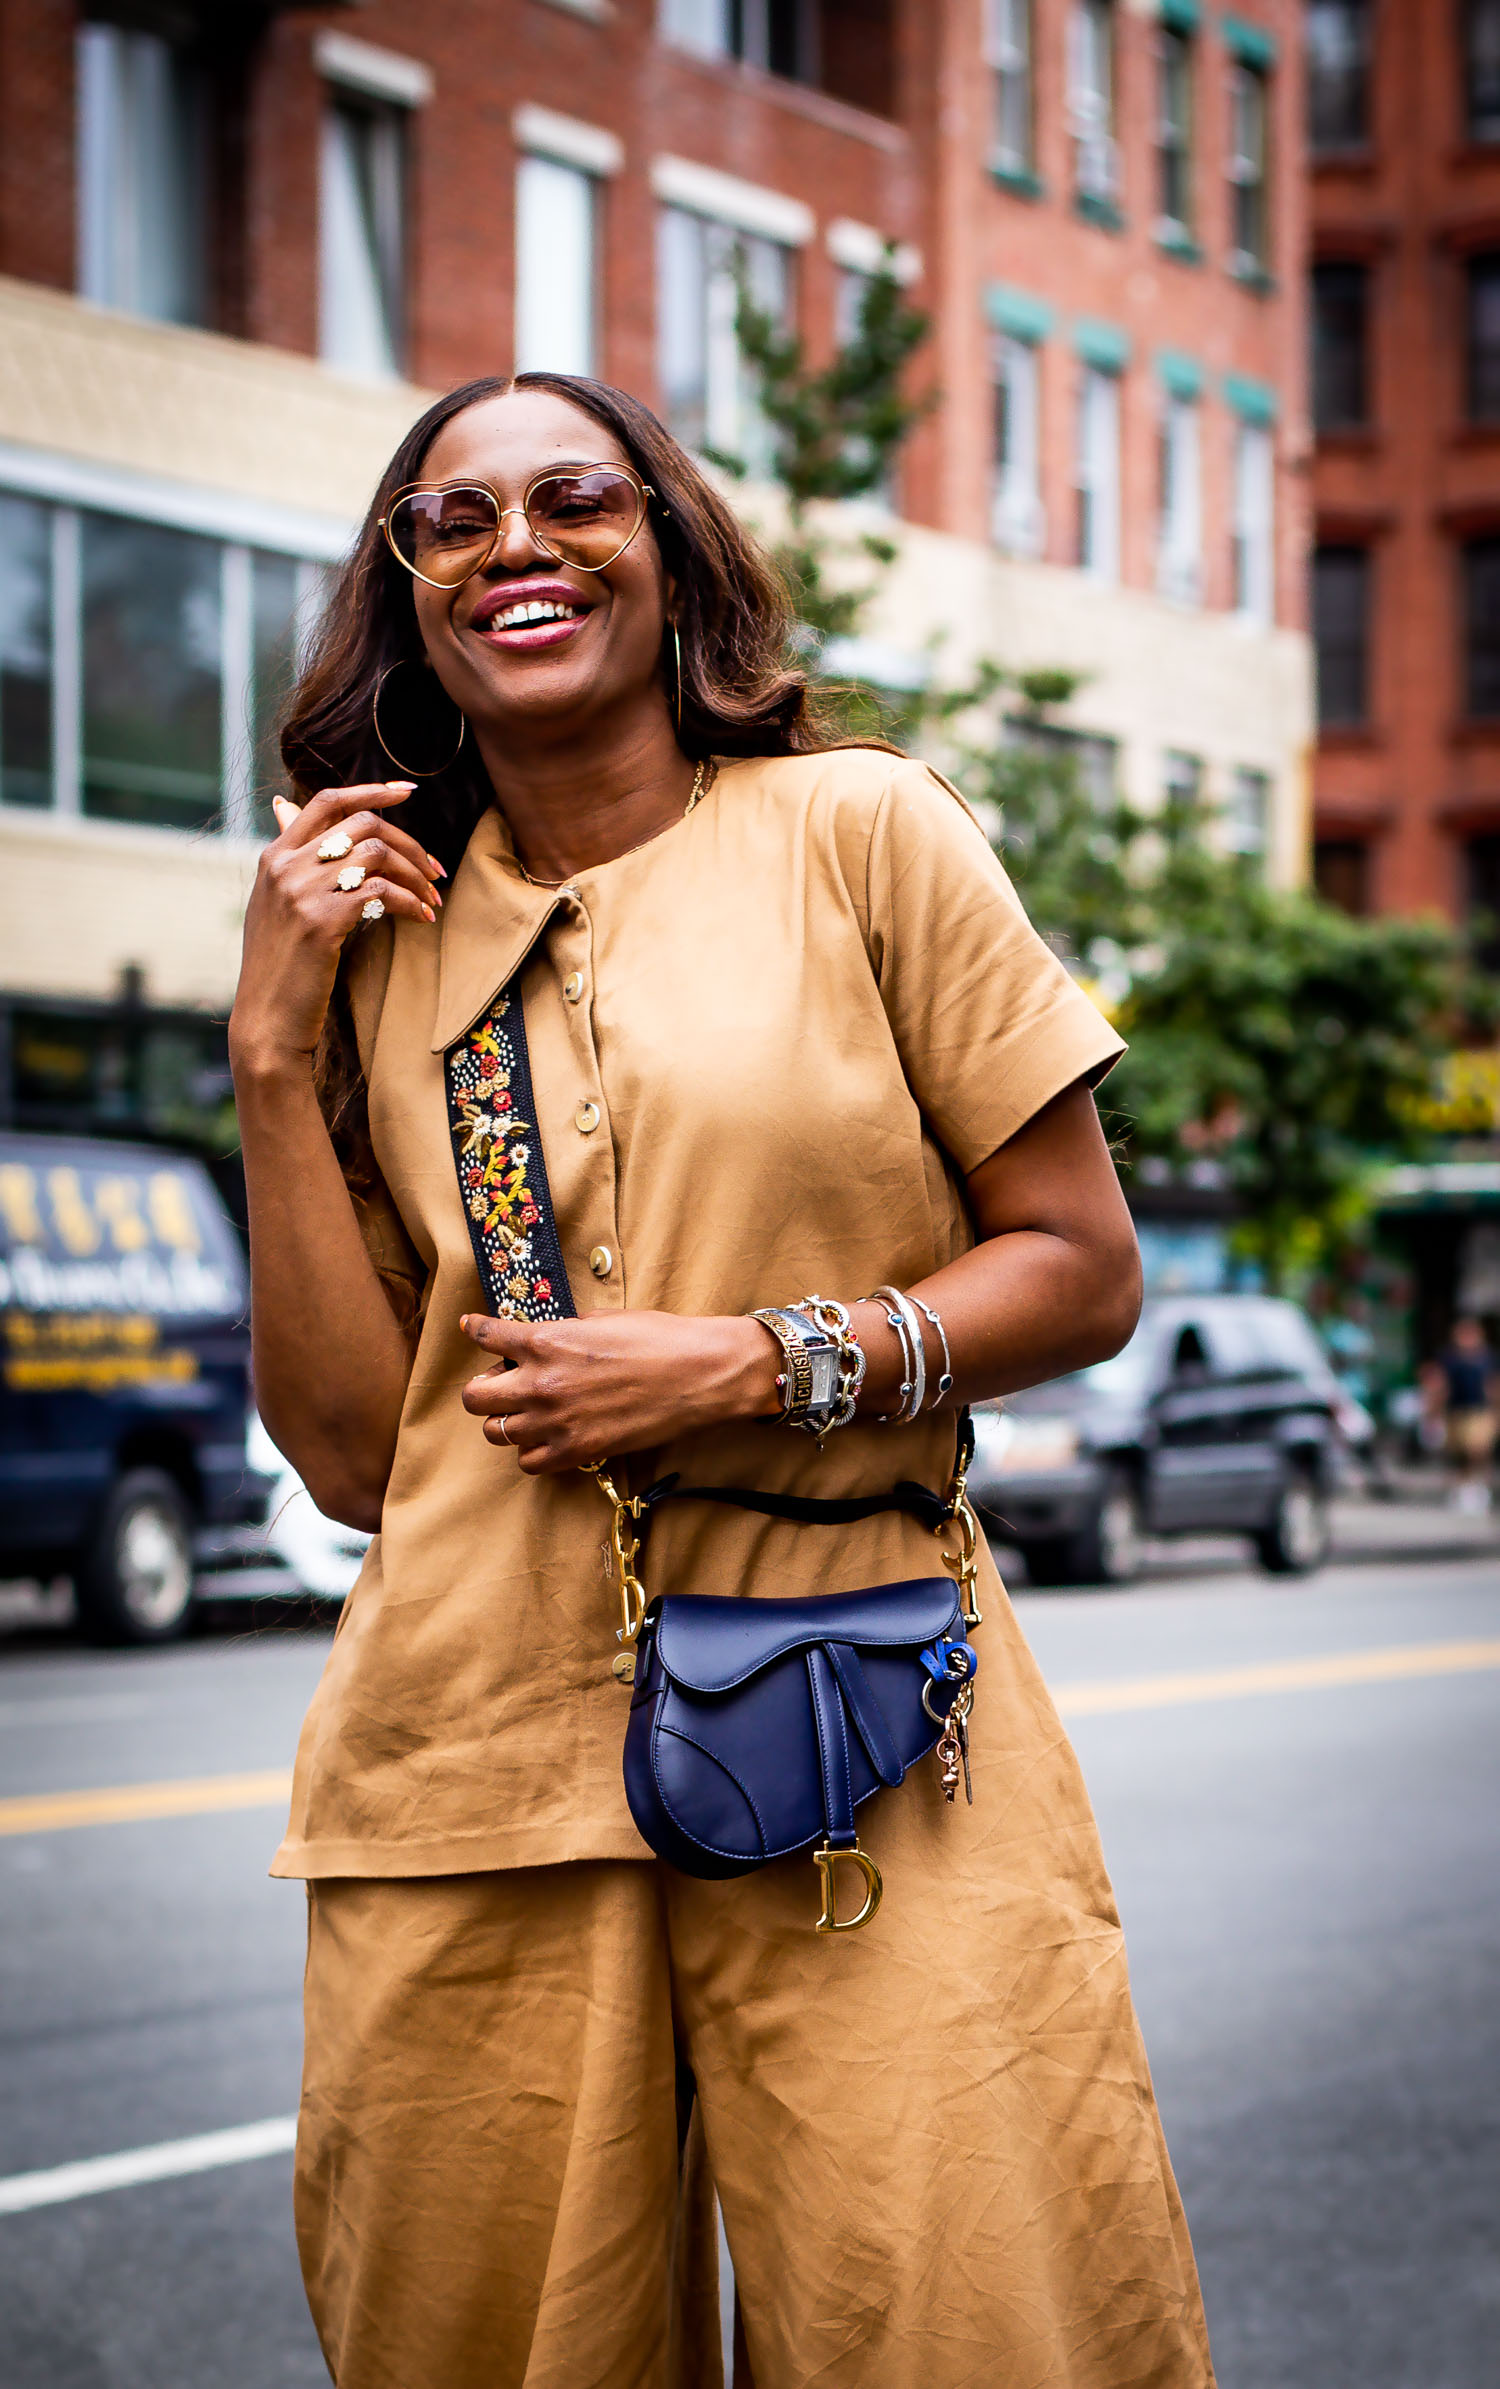 25f02585487 3 tips on how to look chic in a utility jumpsuit. Atlanta fashion and  lifestyle